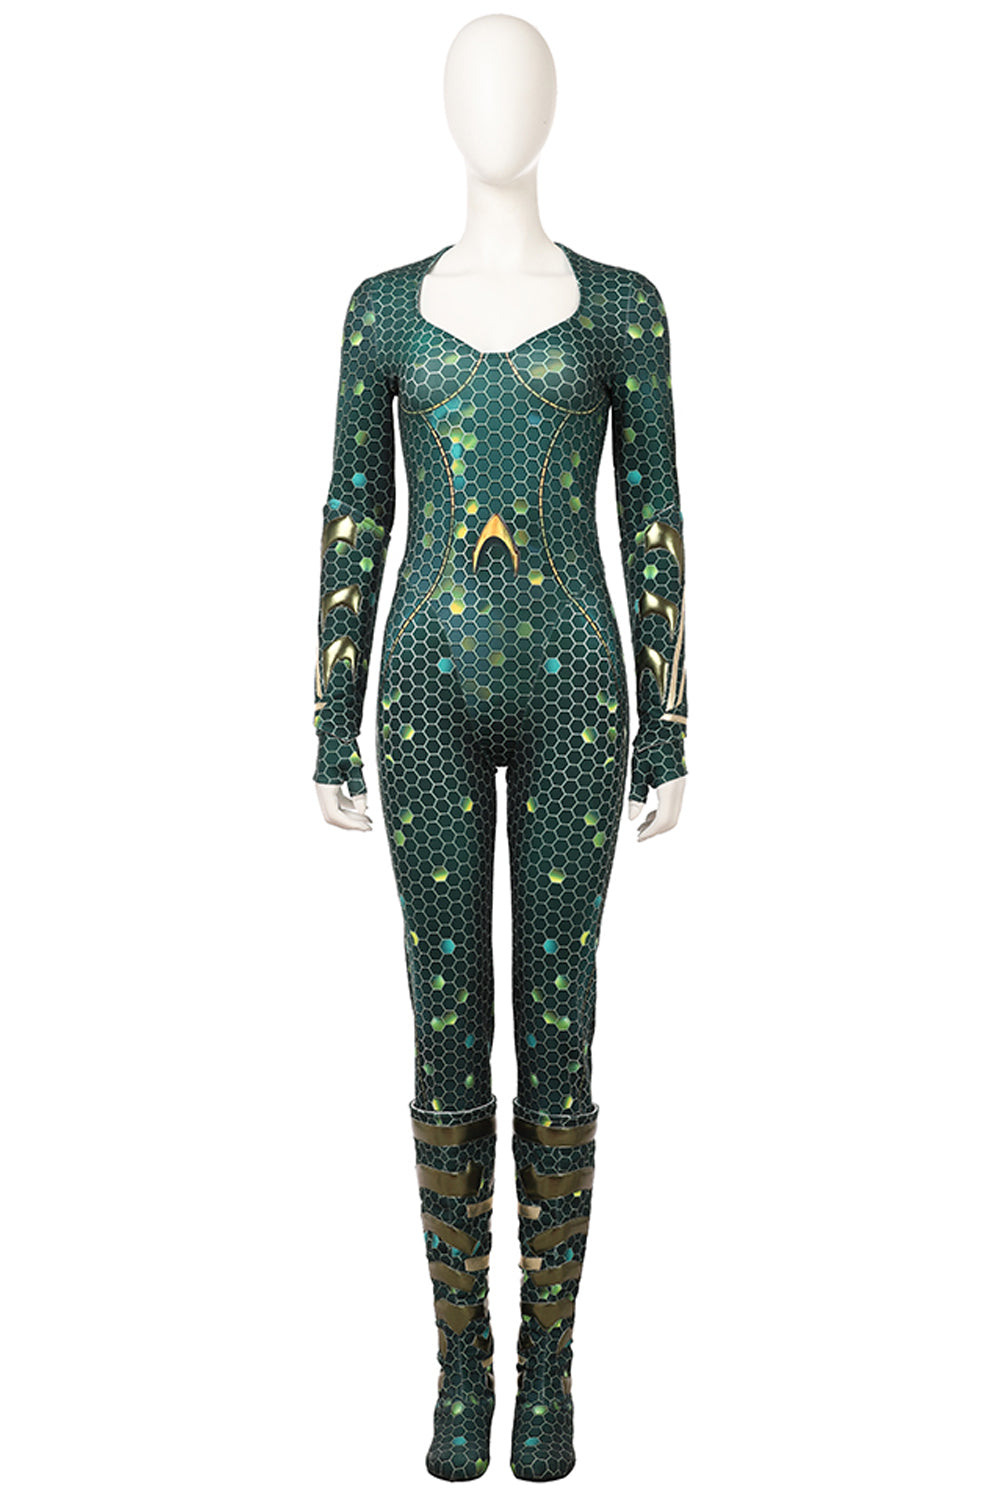 2018 Aquaman Mera Outfit Cosplay Costume  sc 1 st  New Cosplaysky & 2018 Aquaman Mera Outfit Cosplay Costume u2013 New Cosplaysky